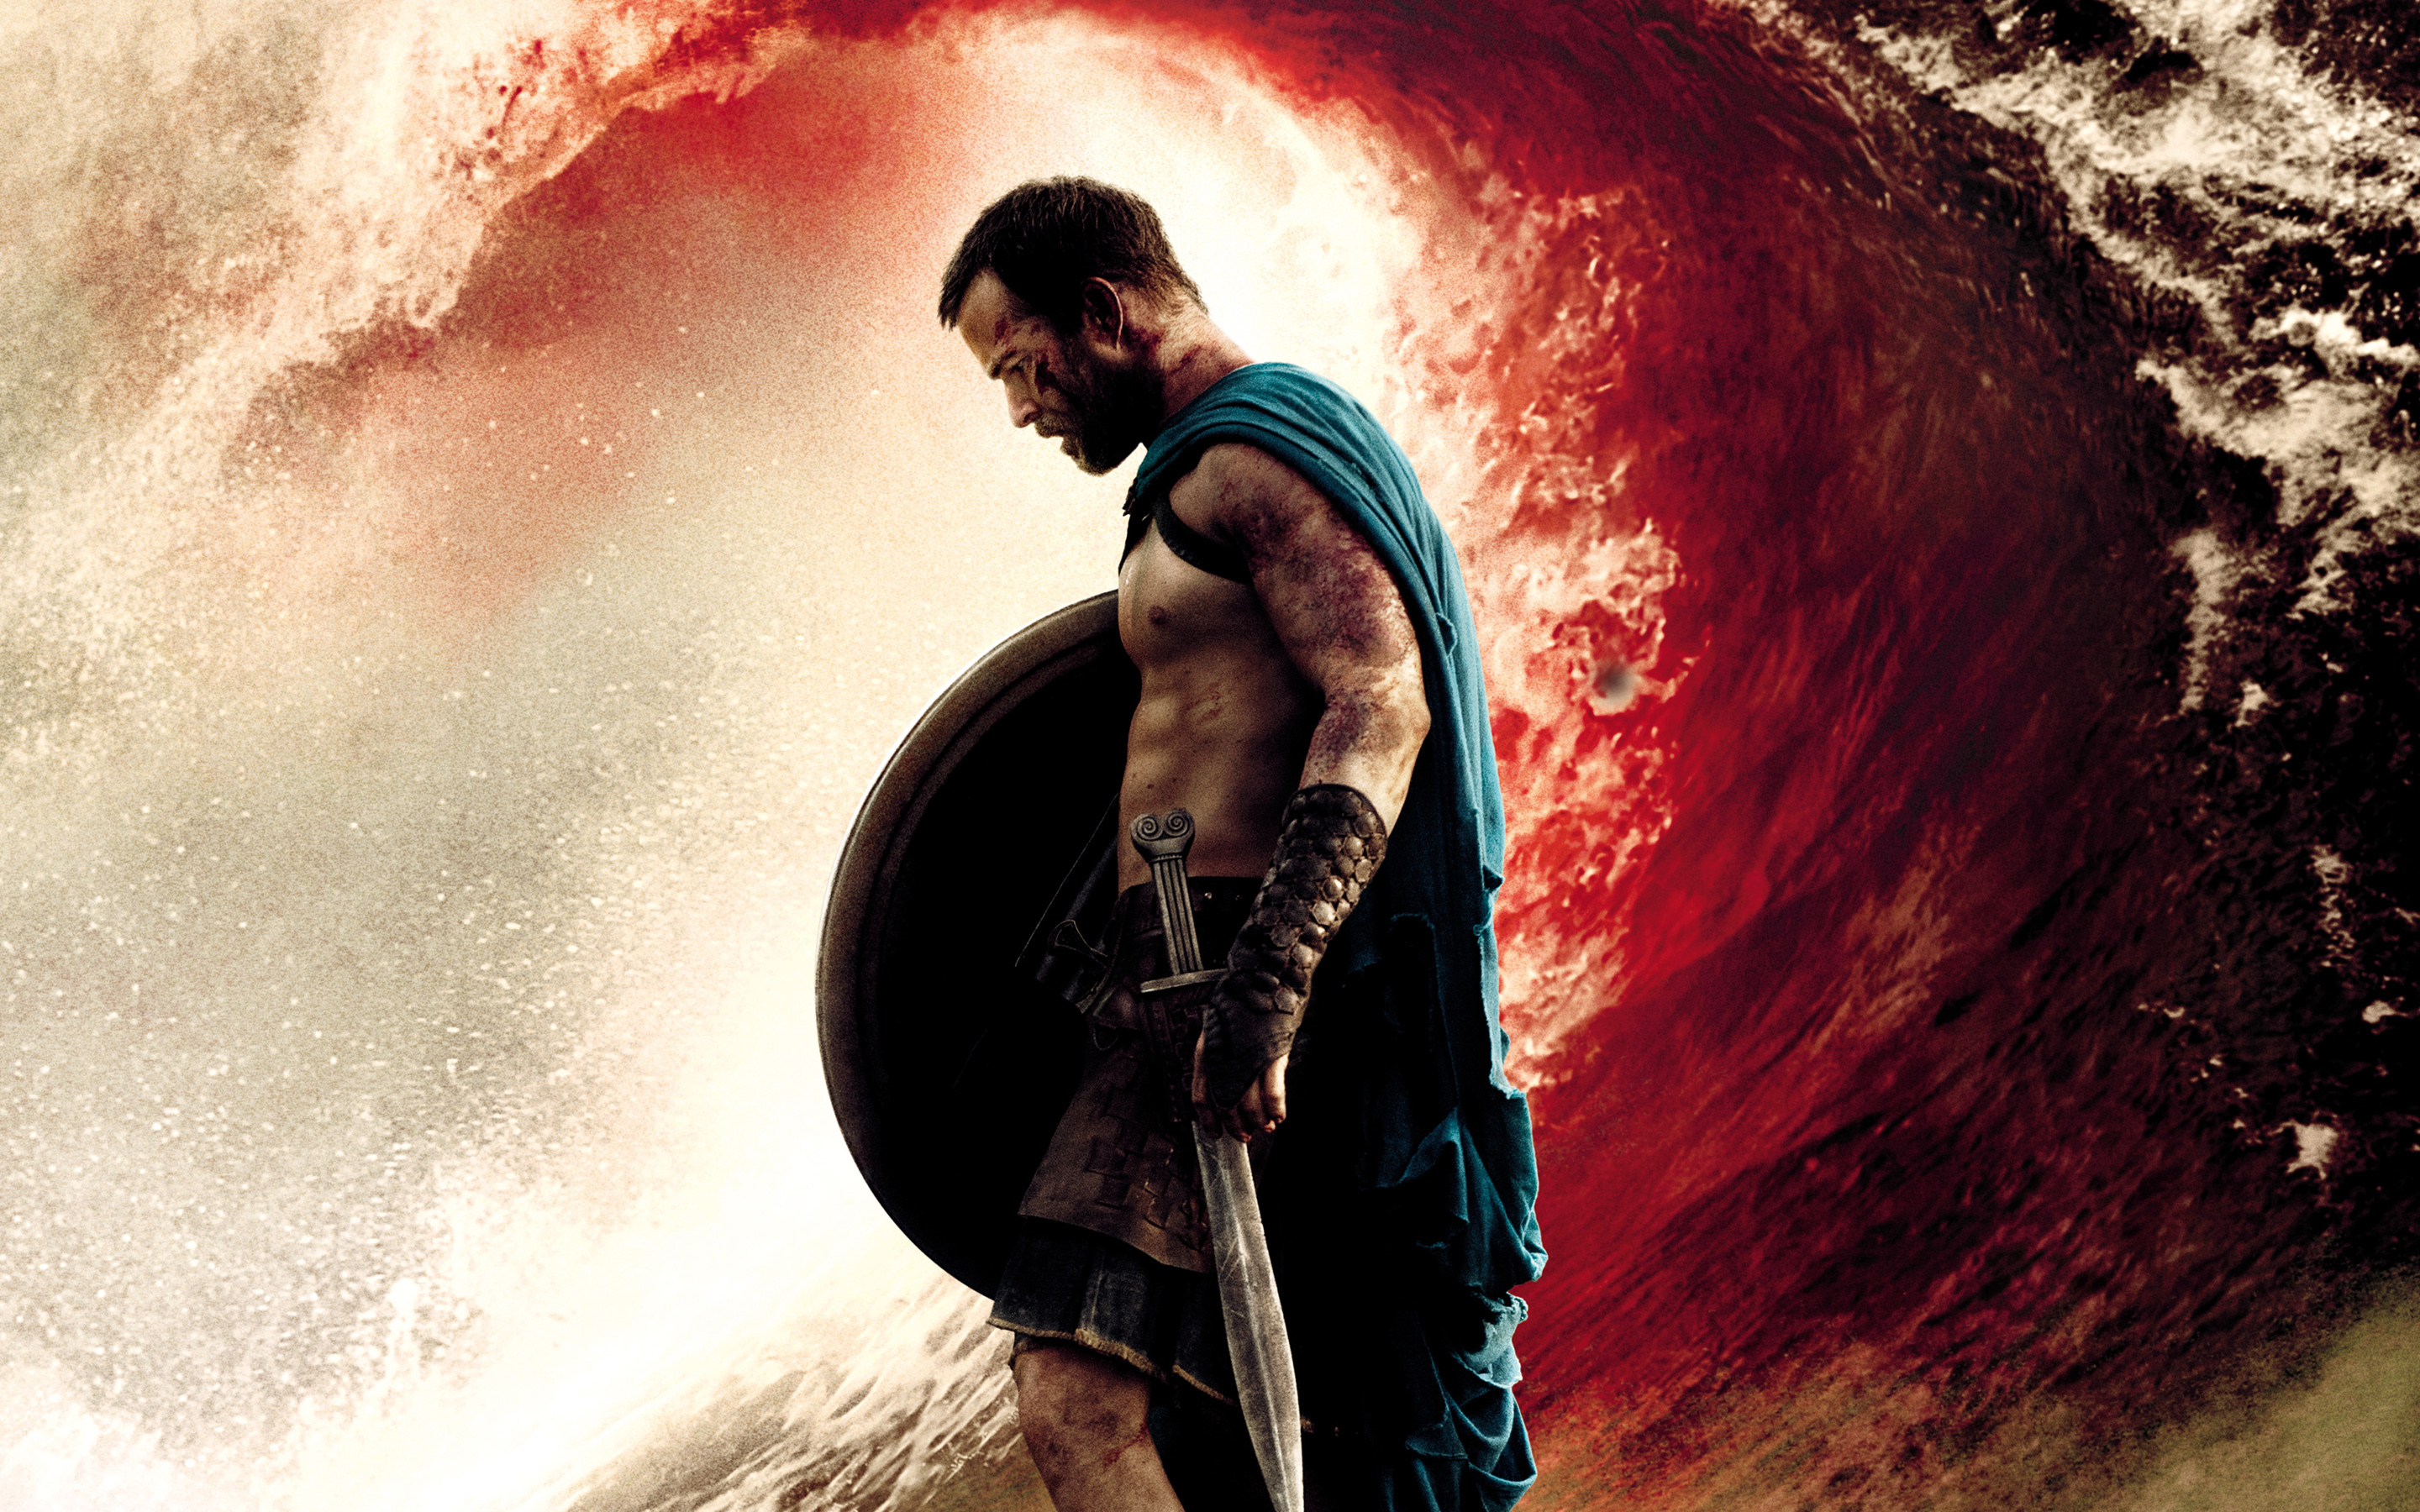 300 spartans full movie in hindi mp4 download by prunwelteji issuu.